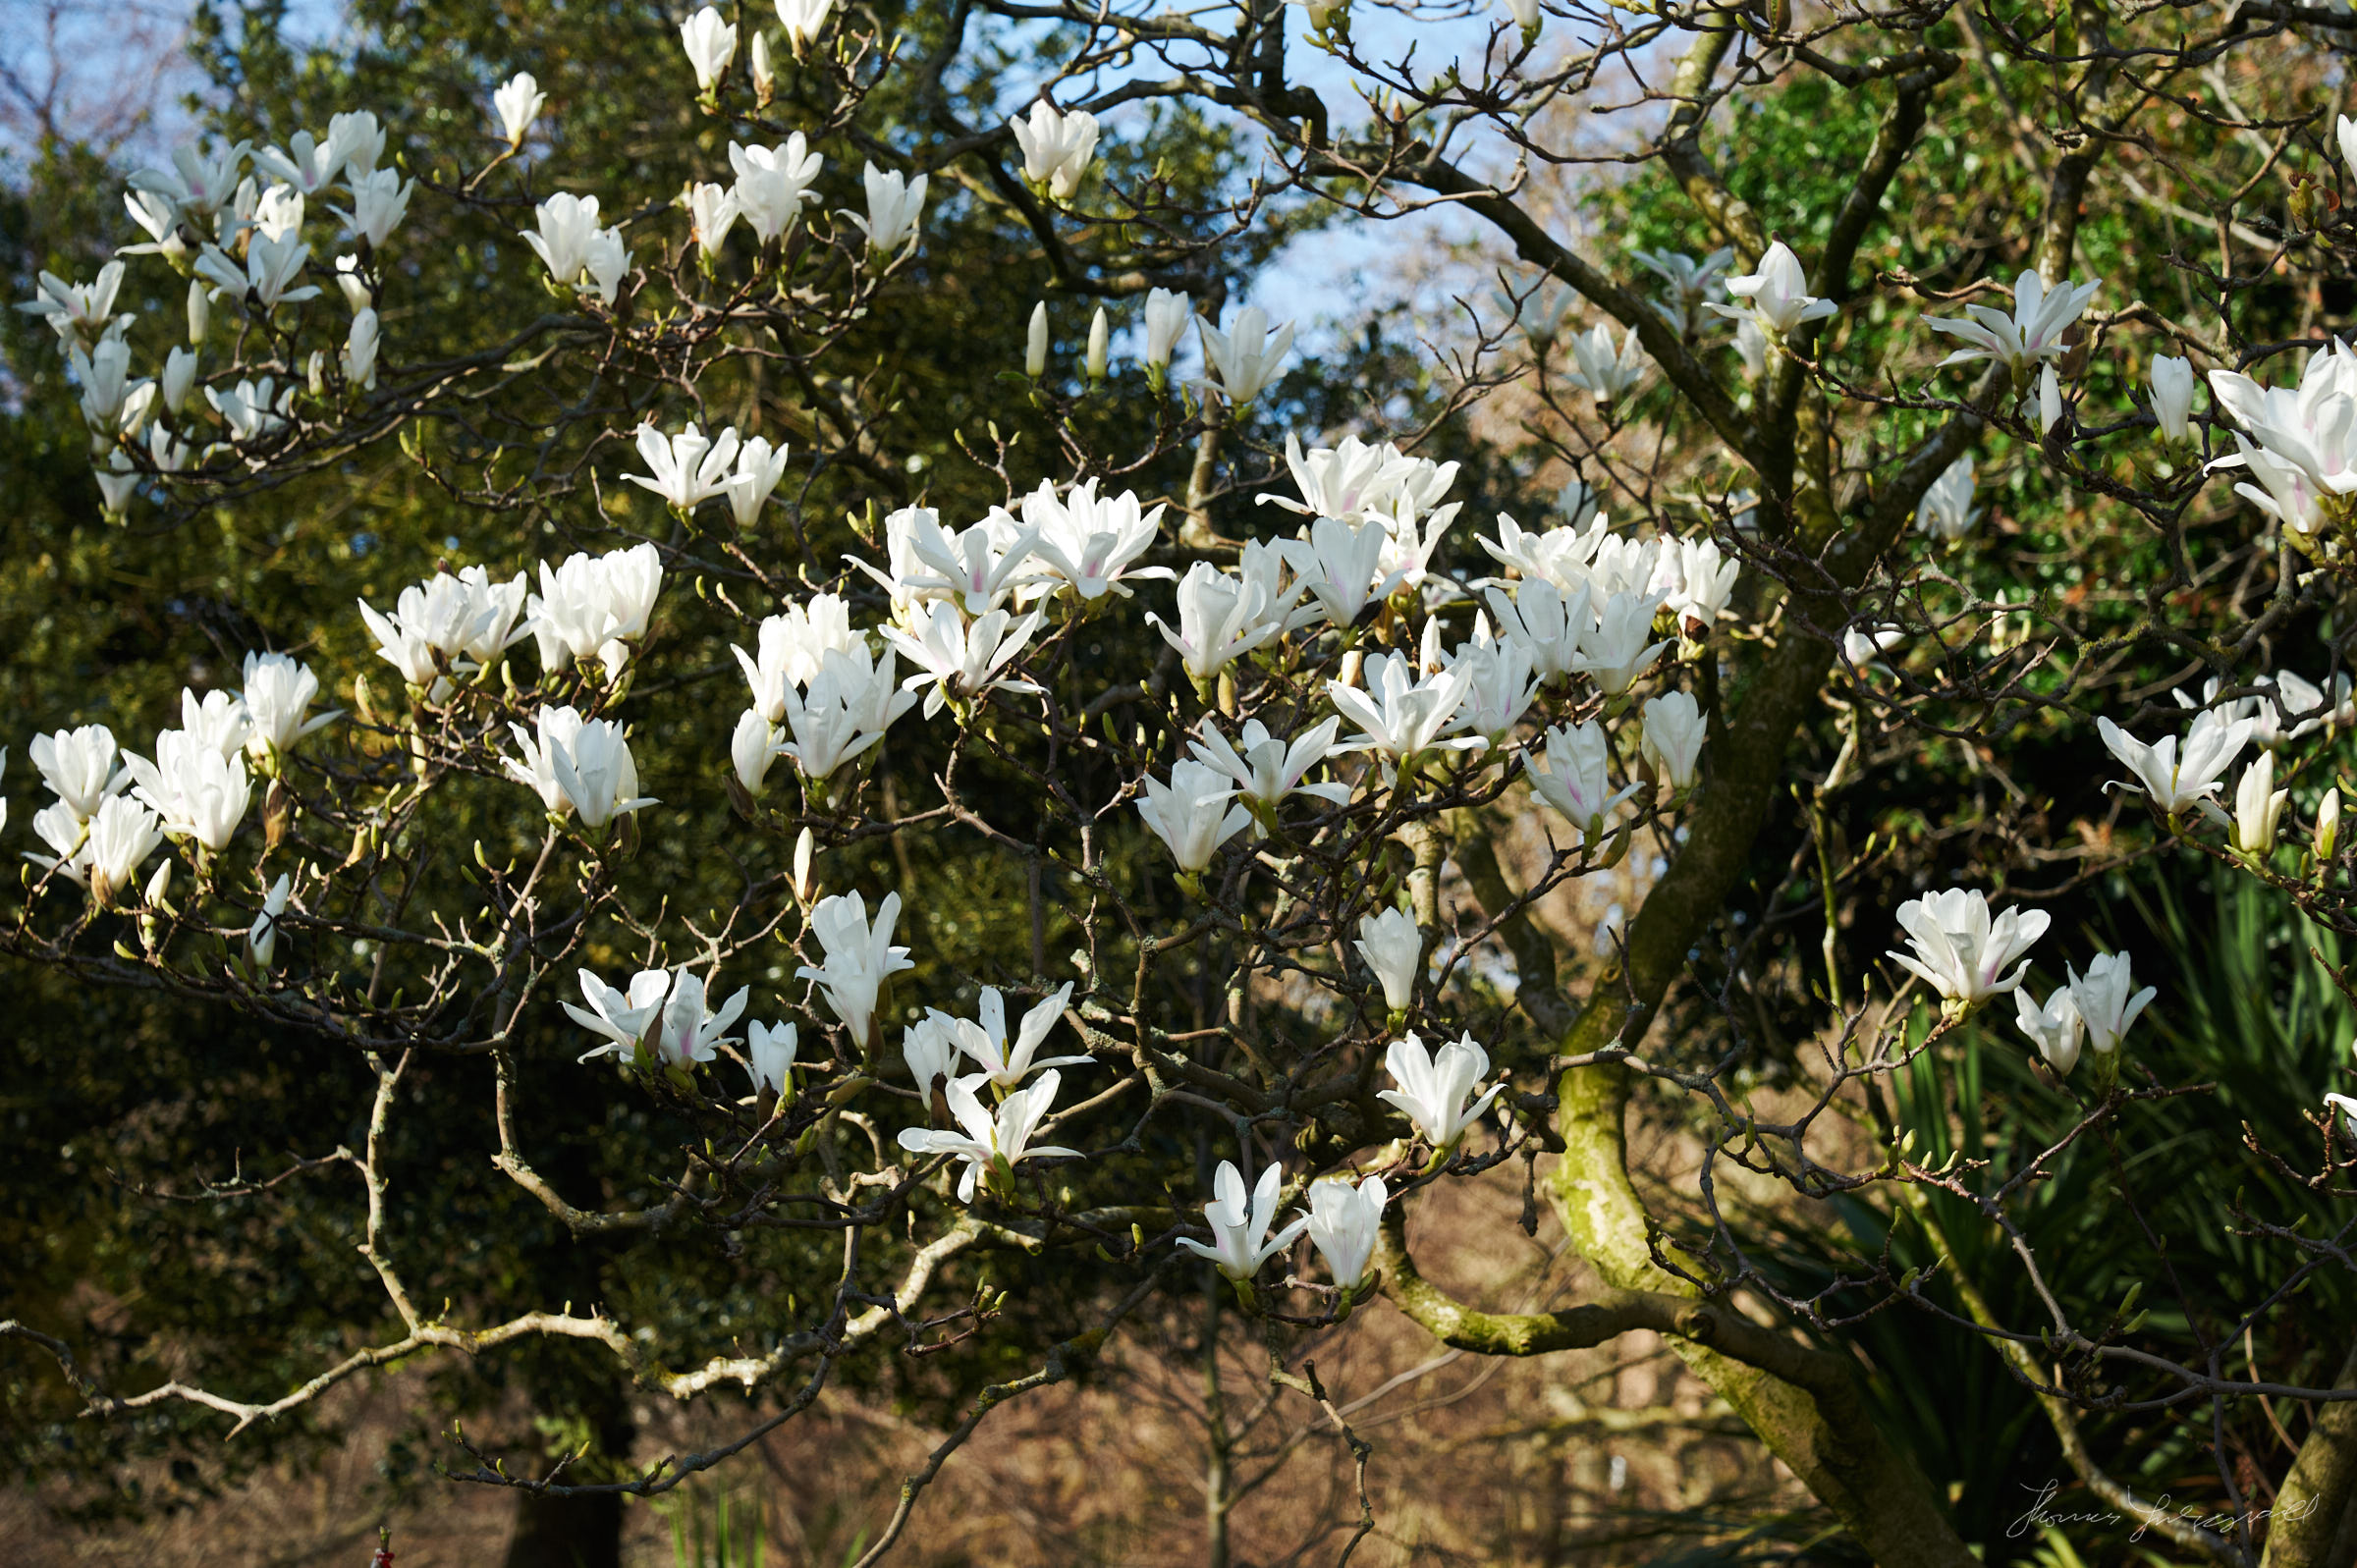 Magnolia flowers blooming